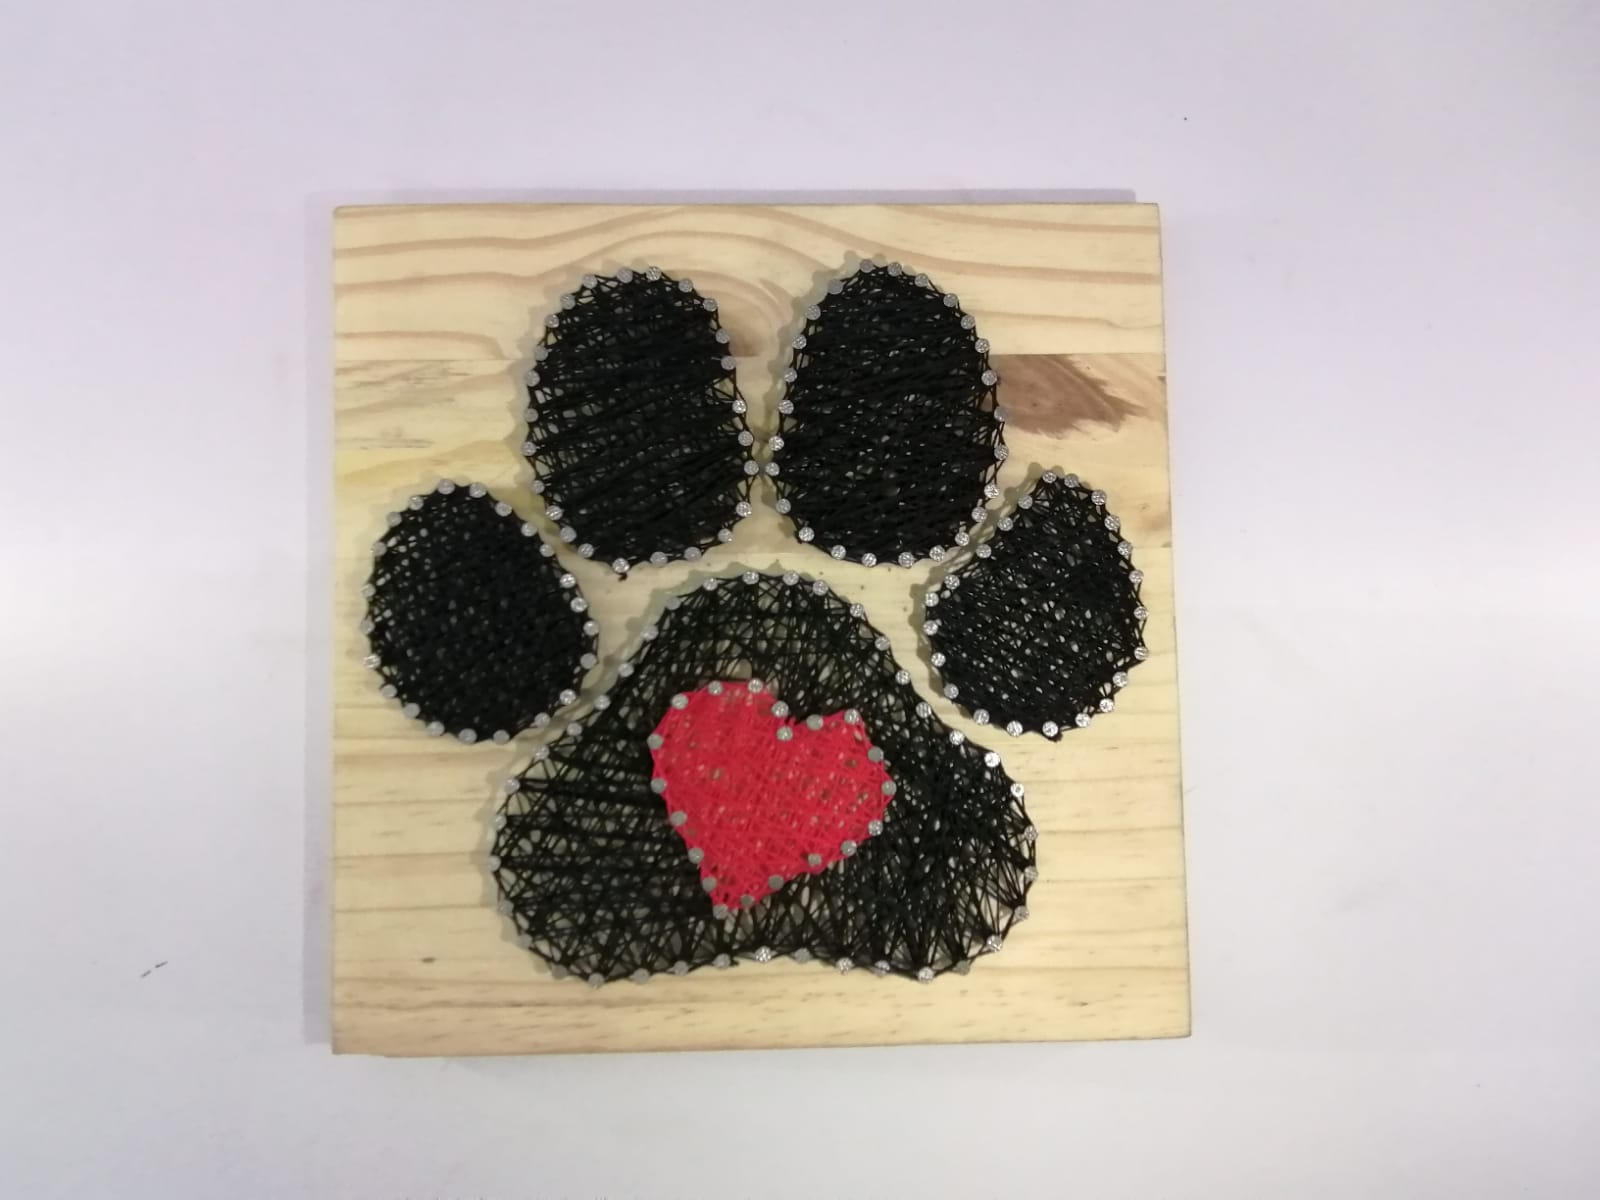 Hartsnare - Dog Paw 225mmx225mm